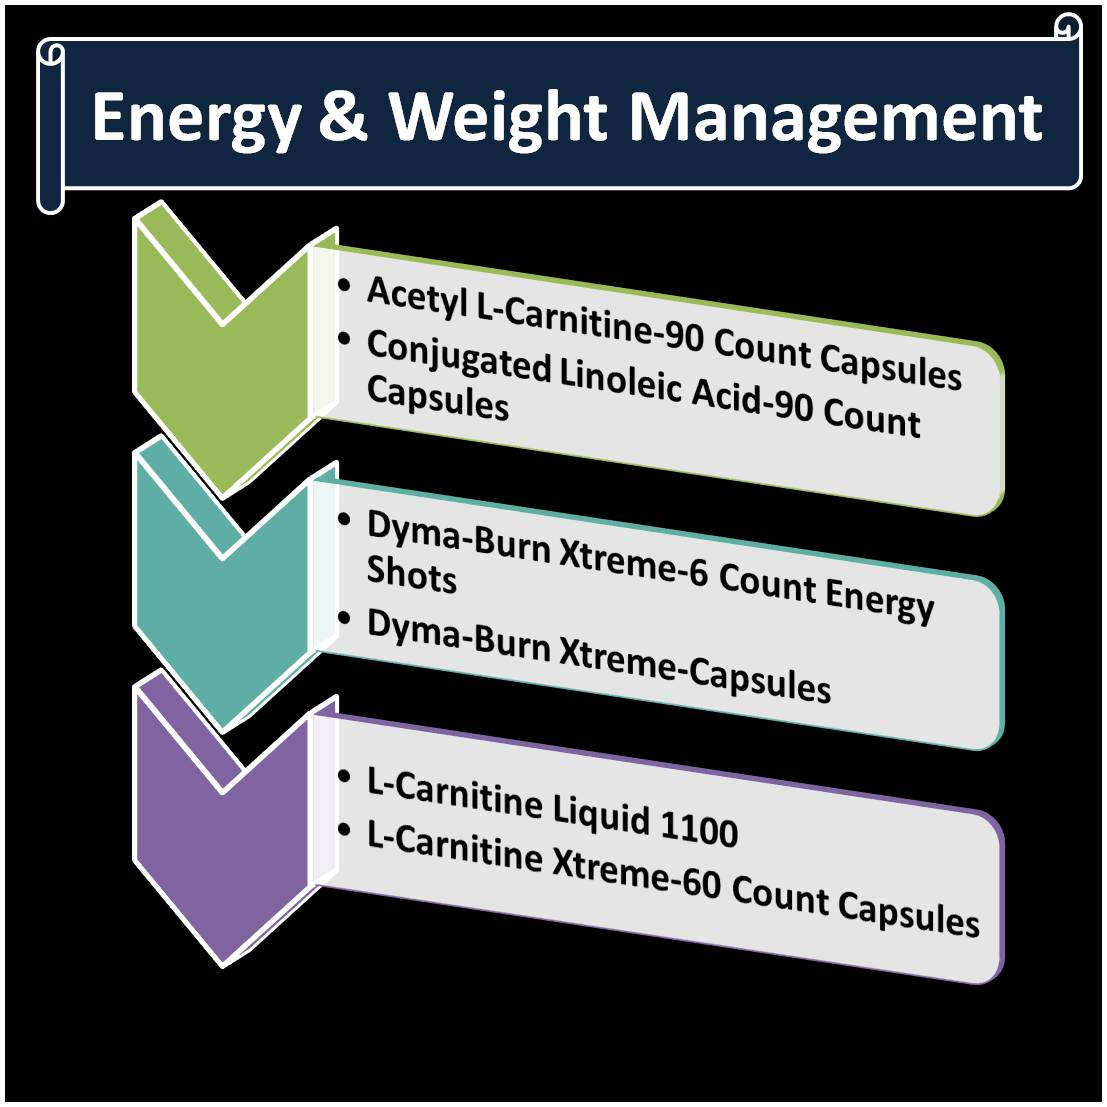 energy and weight management